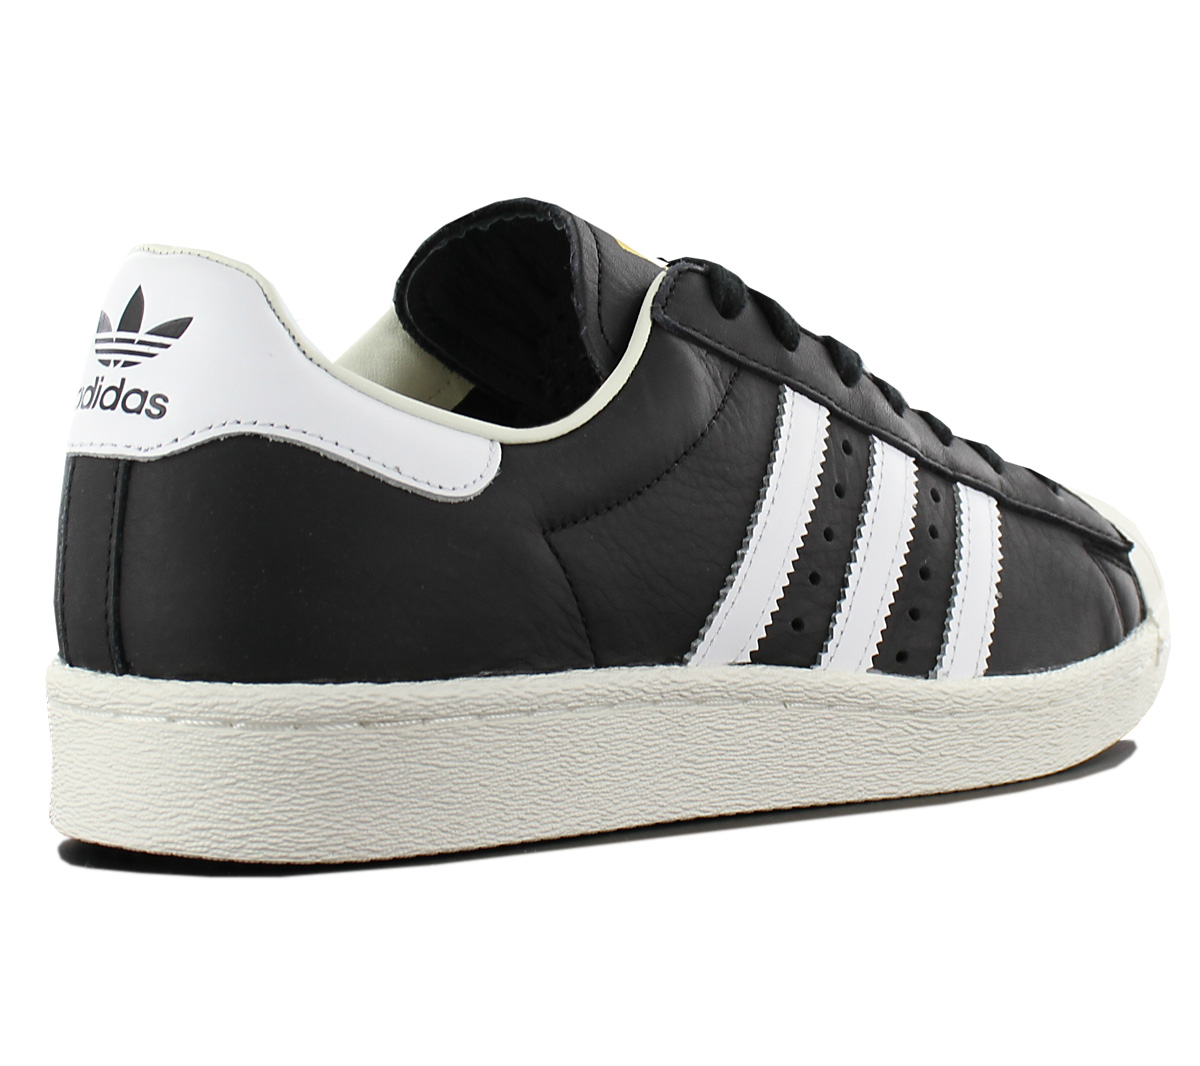 new arrival 24905 36d29 Adidas Originals Superstar Boost Trainers Leather Shoes Men s ...